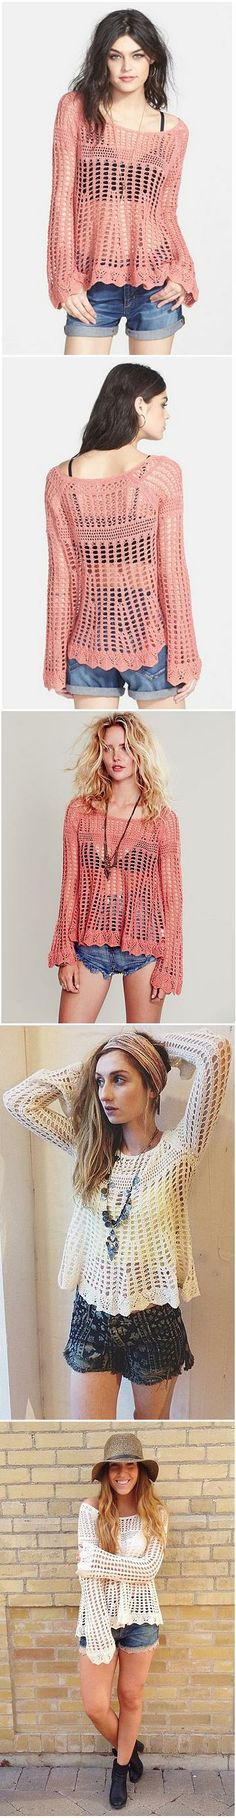 Free People. 'Annabelle' Crocheted Pullover.